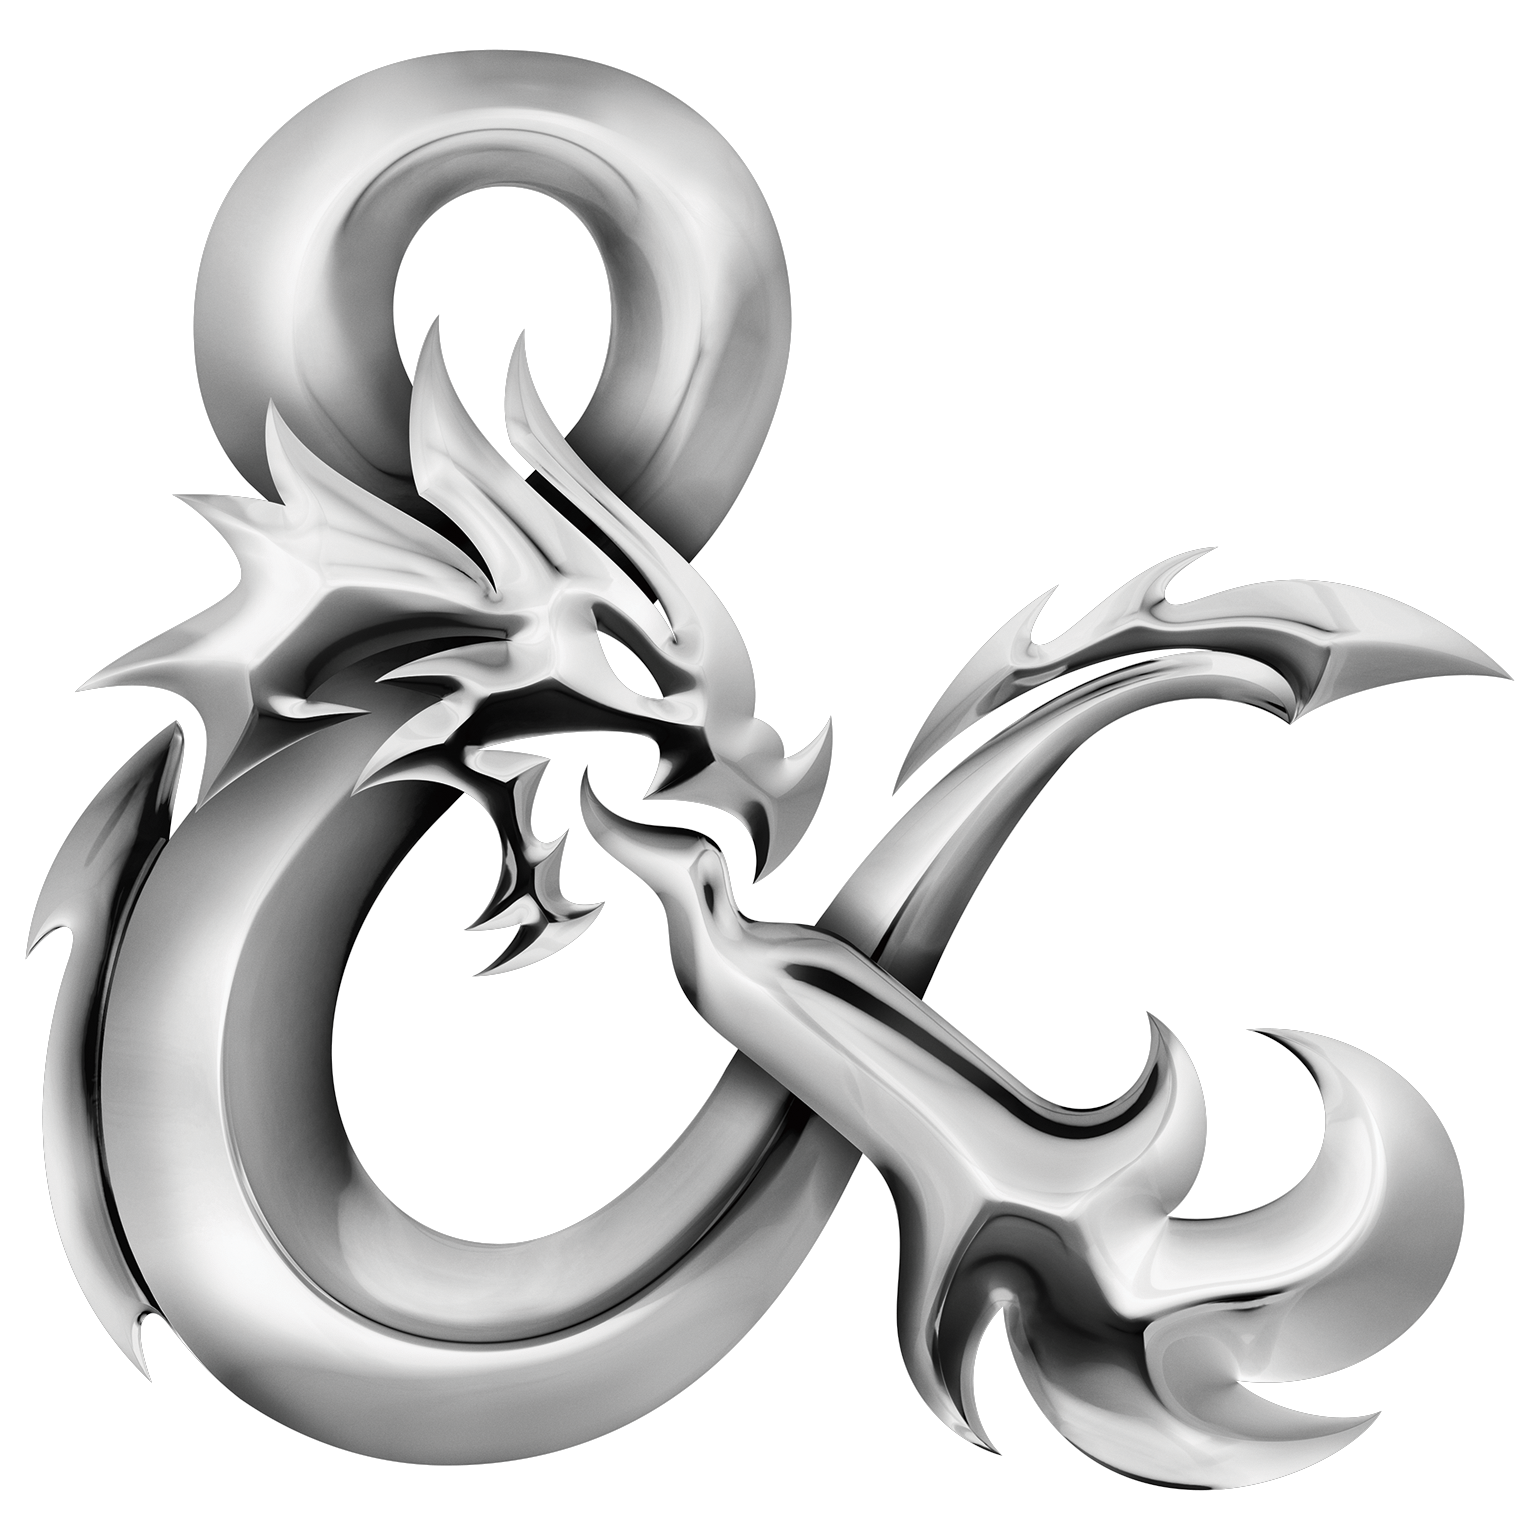 Dungeons & Dragons ampersand